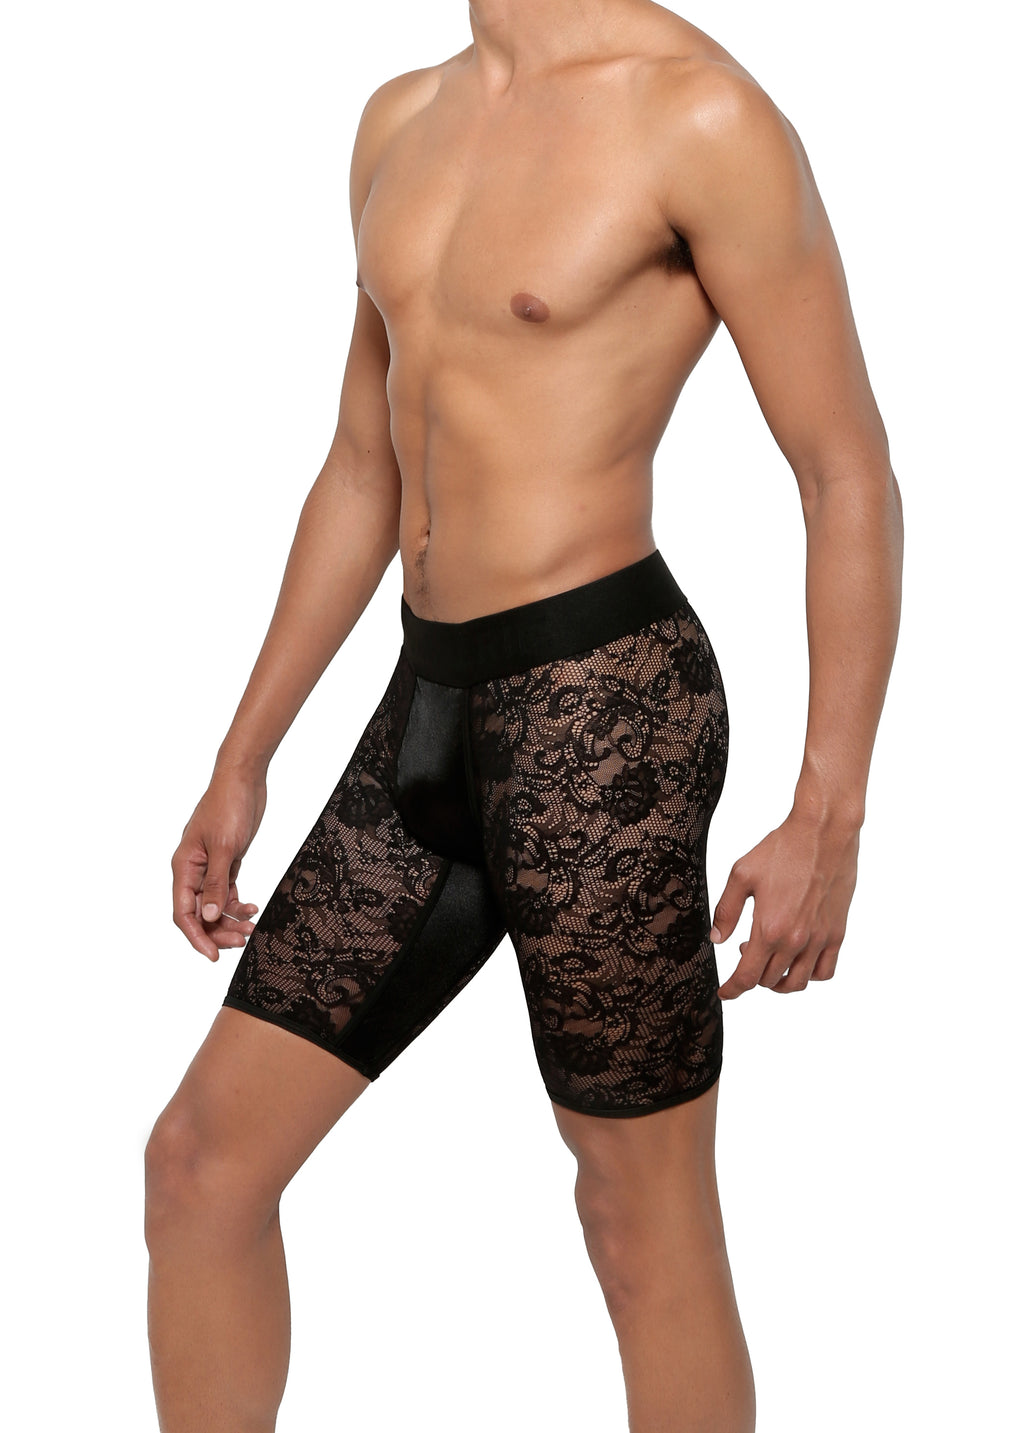 CYCLE SHORT in LACE SPANDEX - MENAGERIE Intimates MENS Lingerie